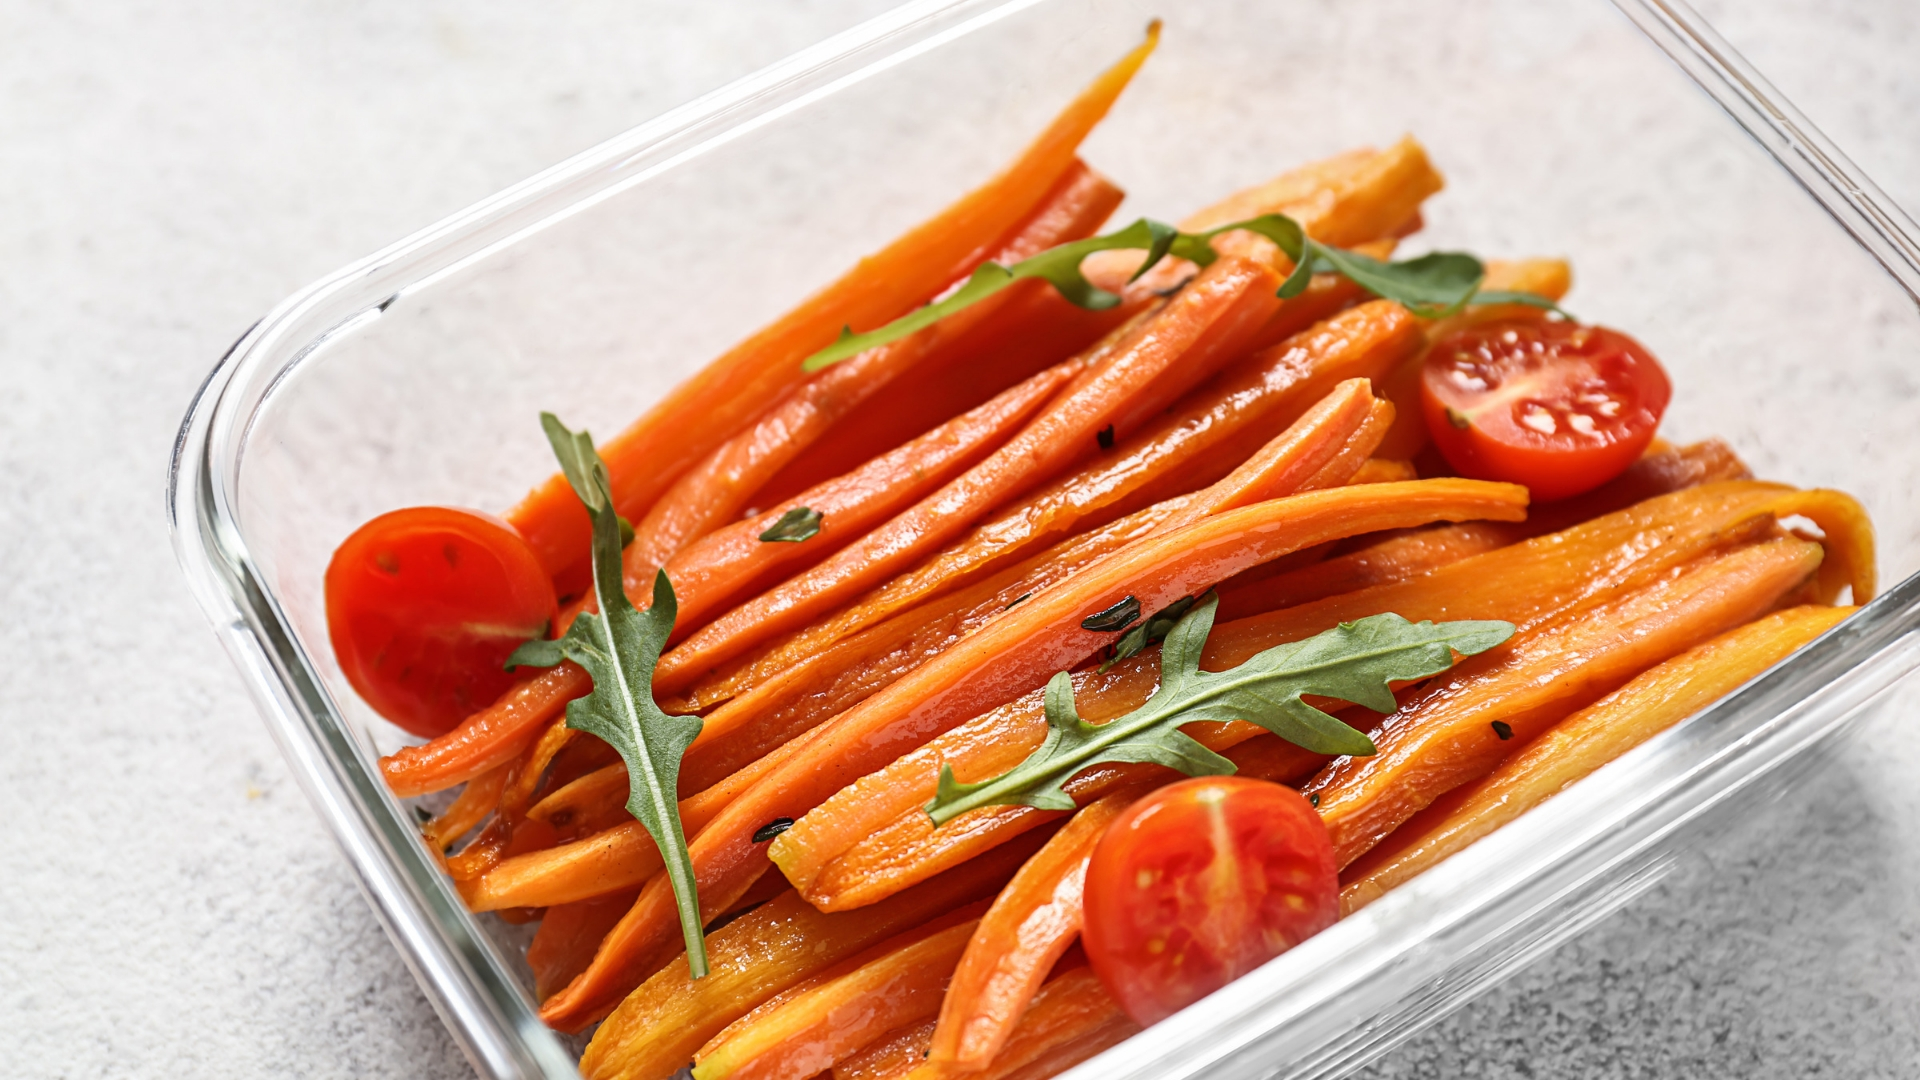 carrot large pieces